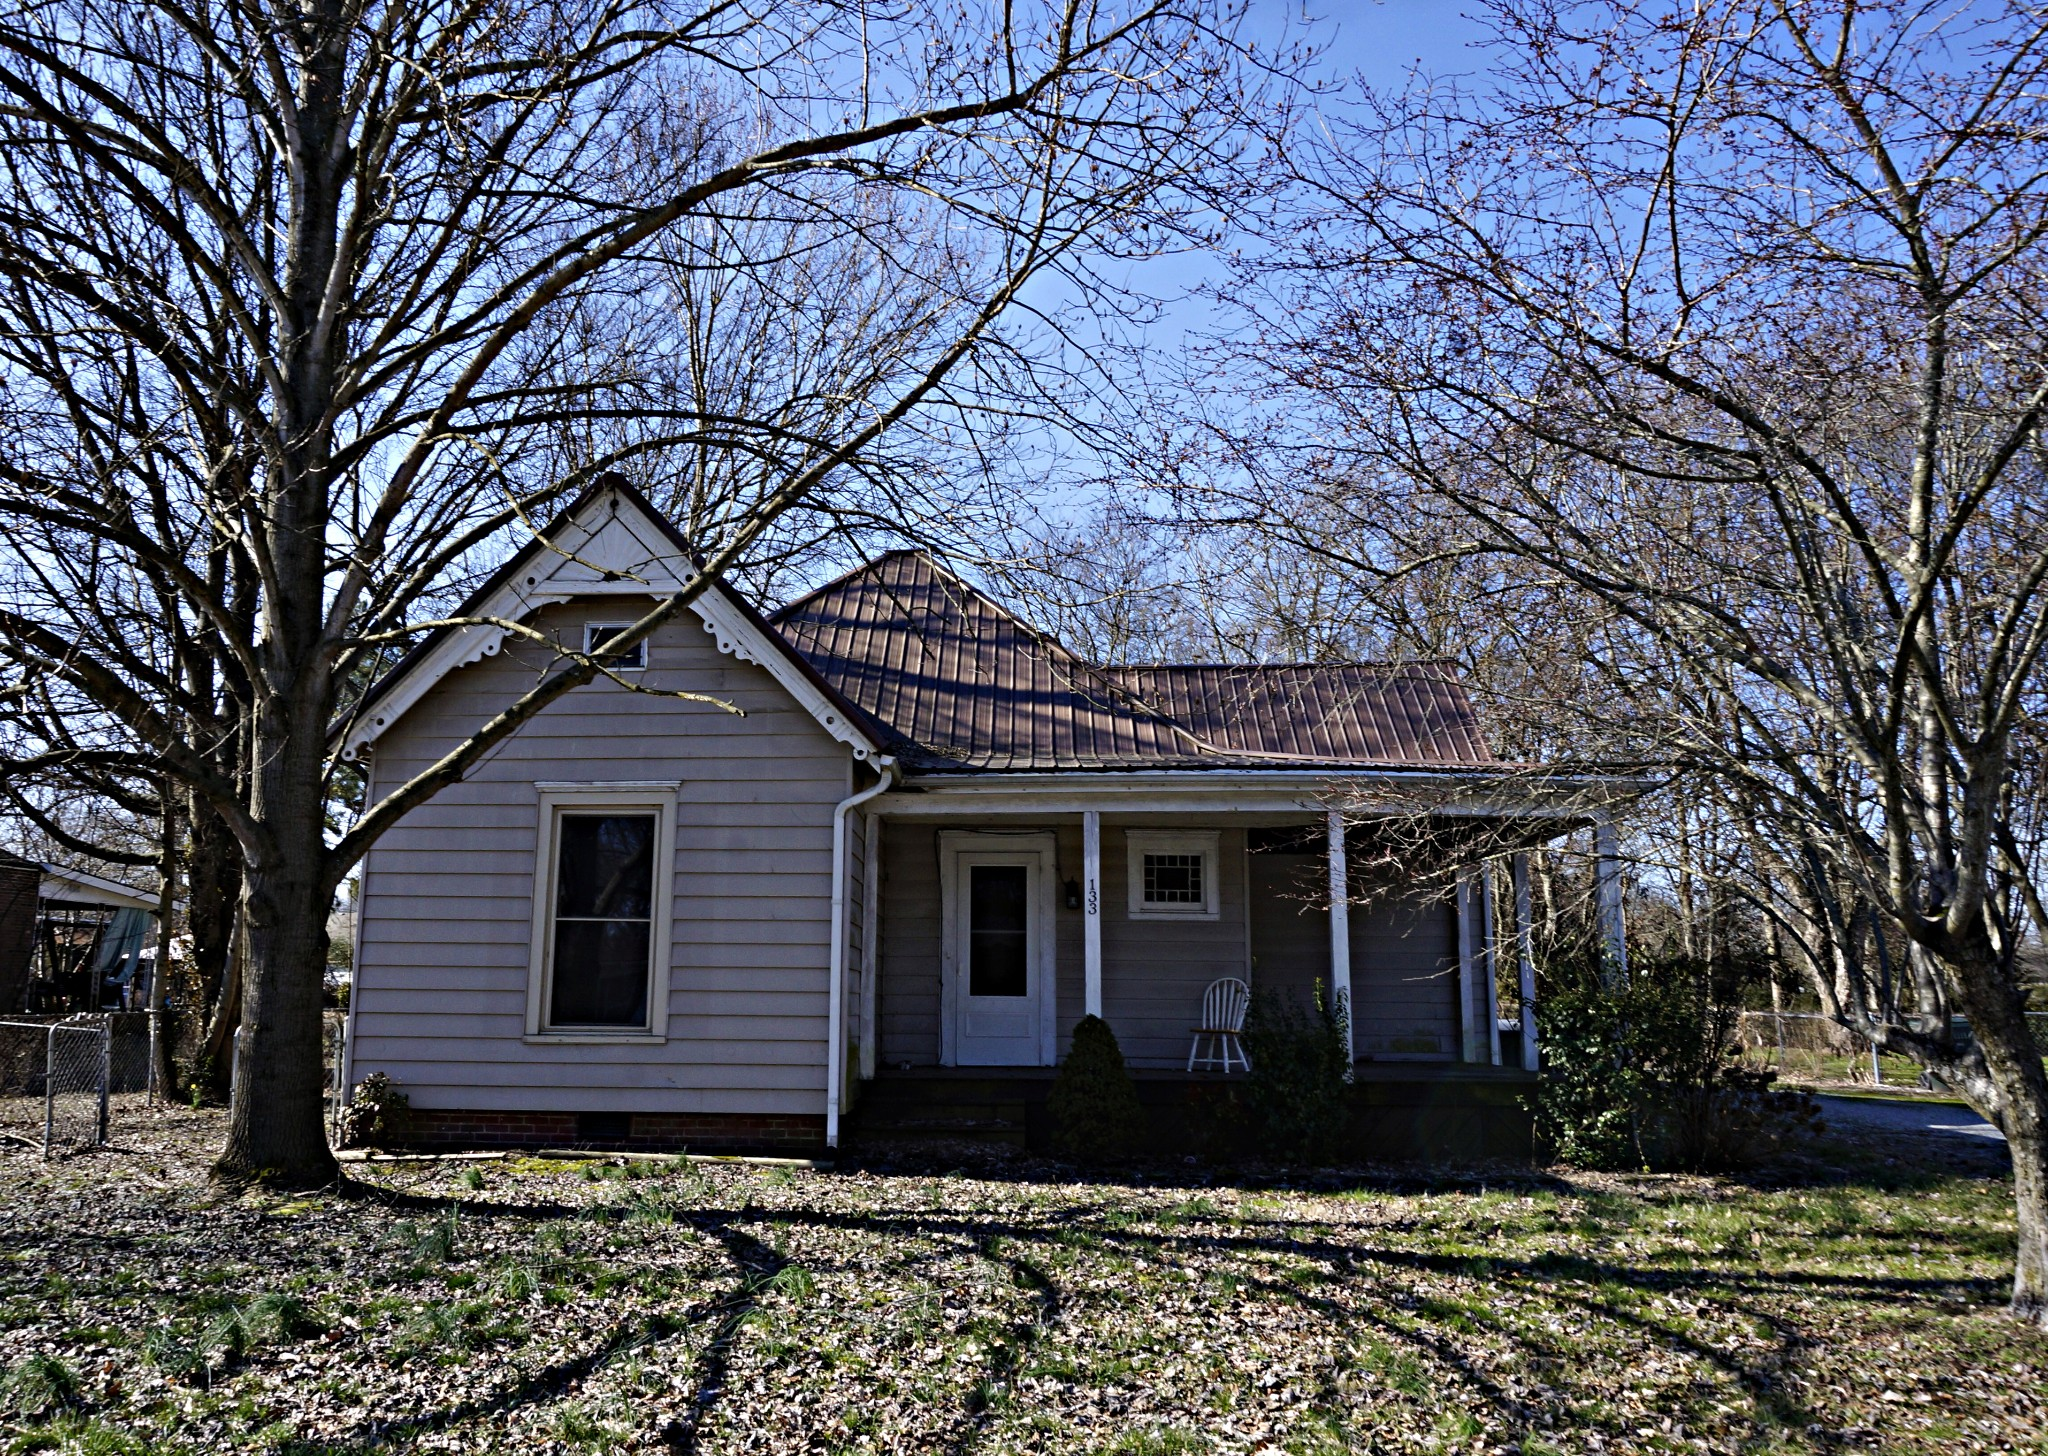 133 N Ewing St, Guthrie, KY 42234 - Guthrie, KY real estate listing